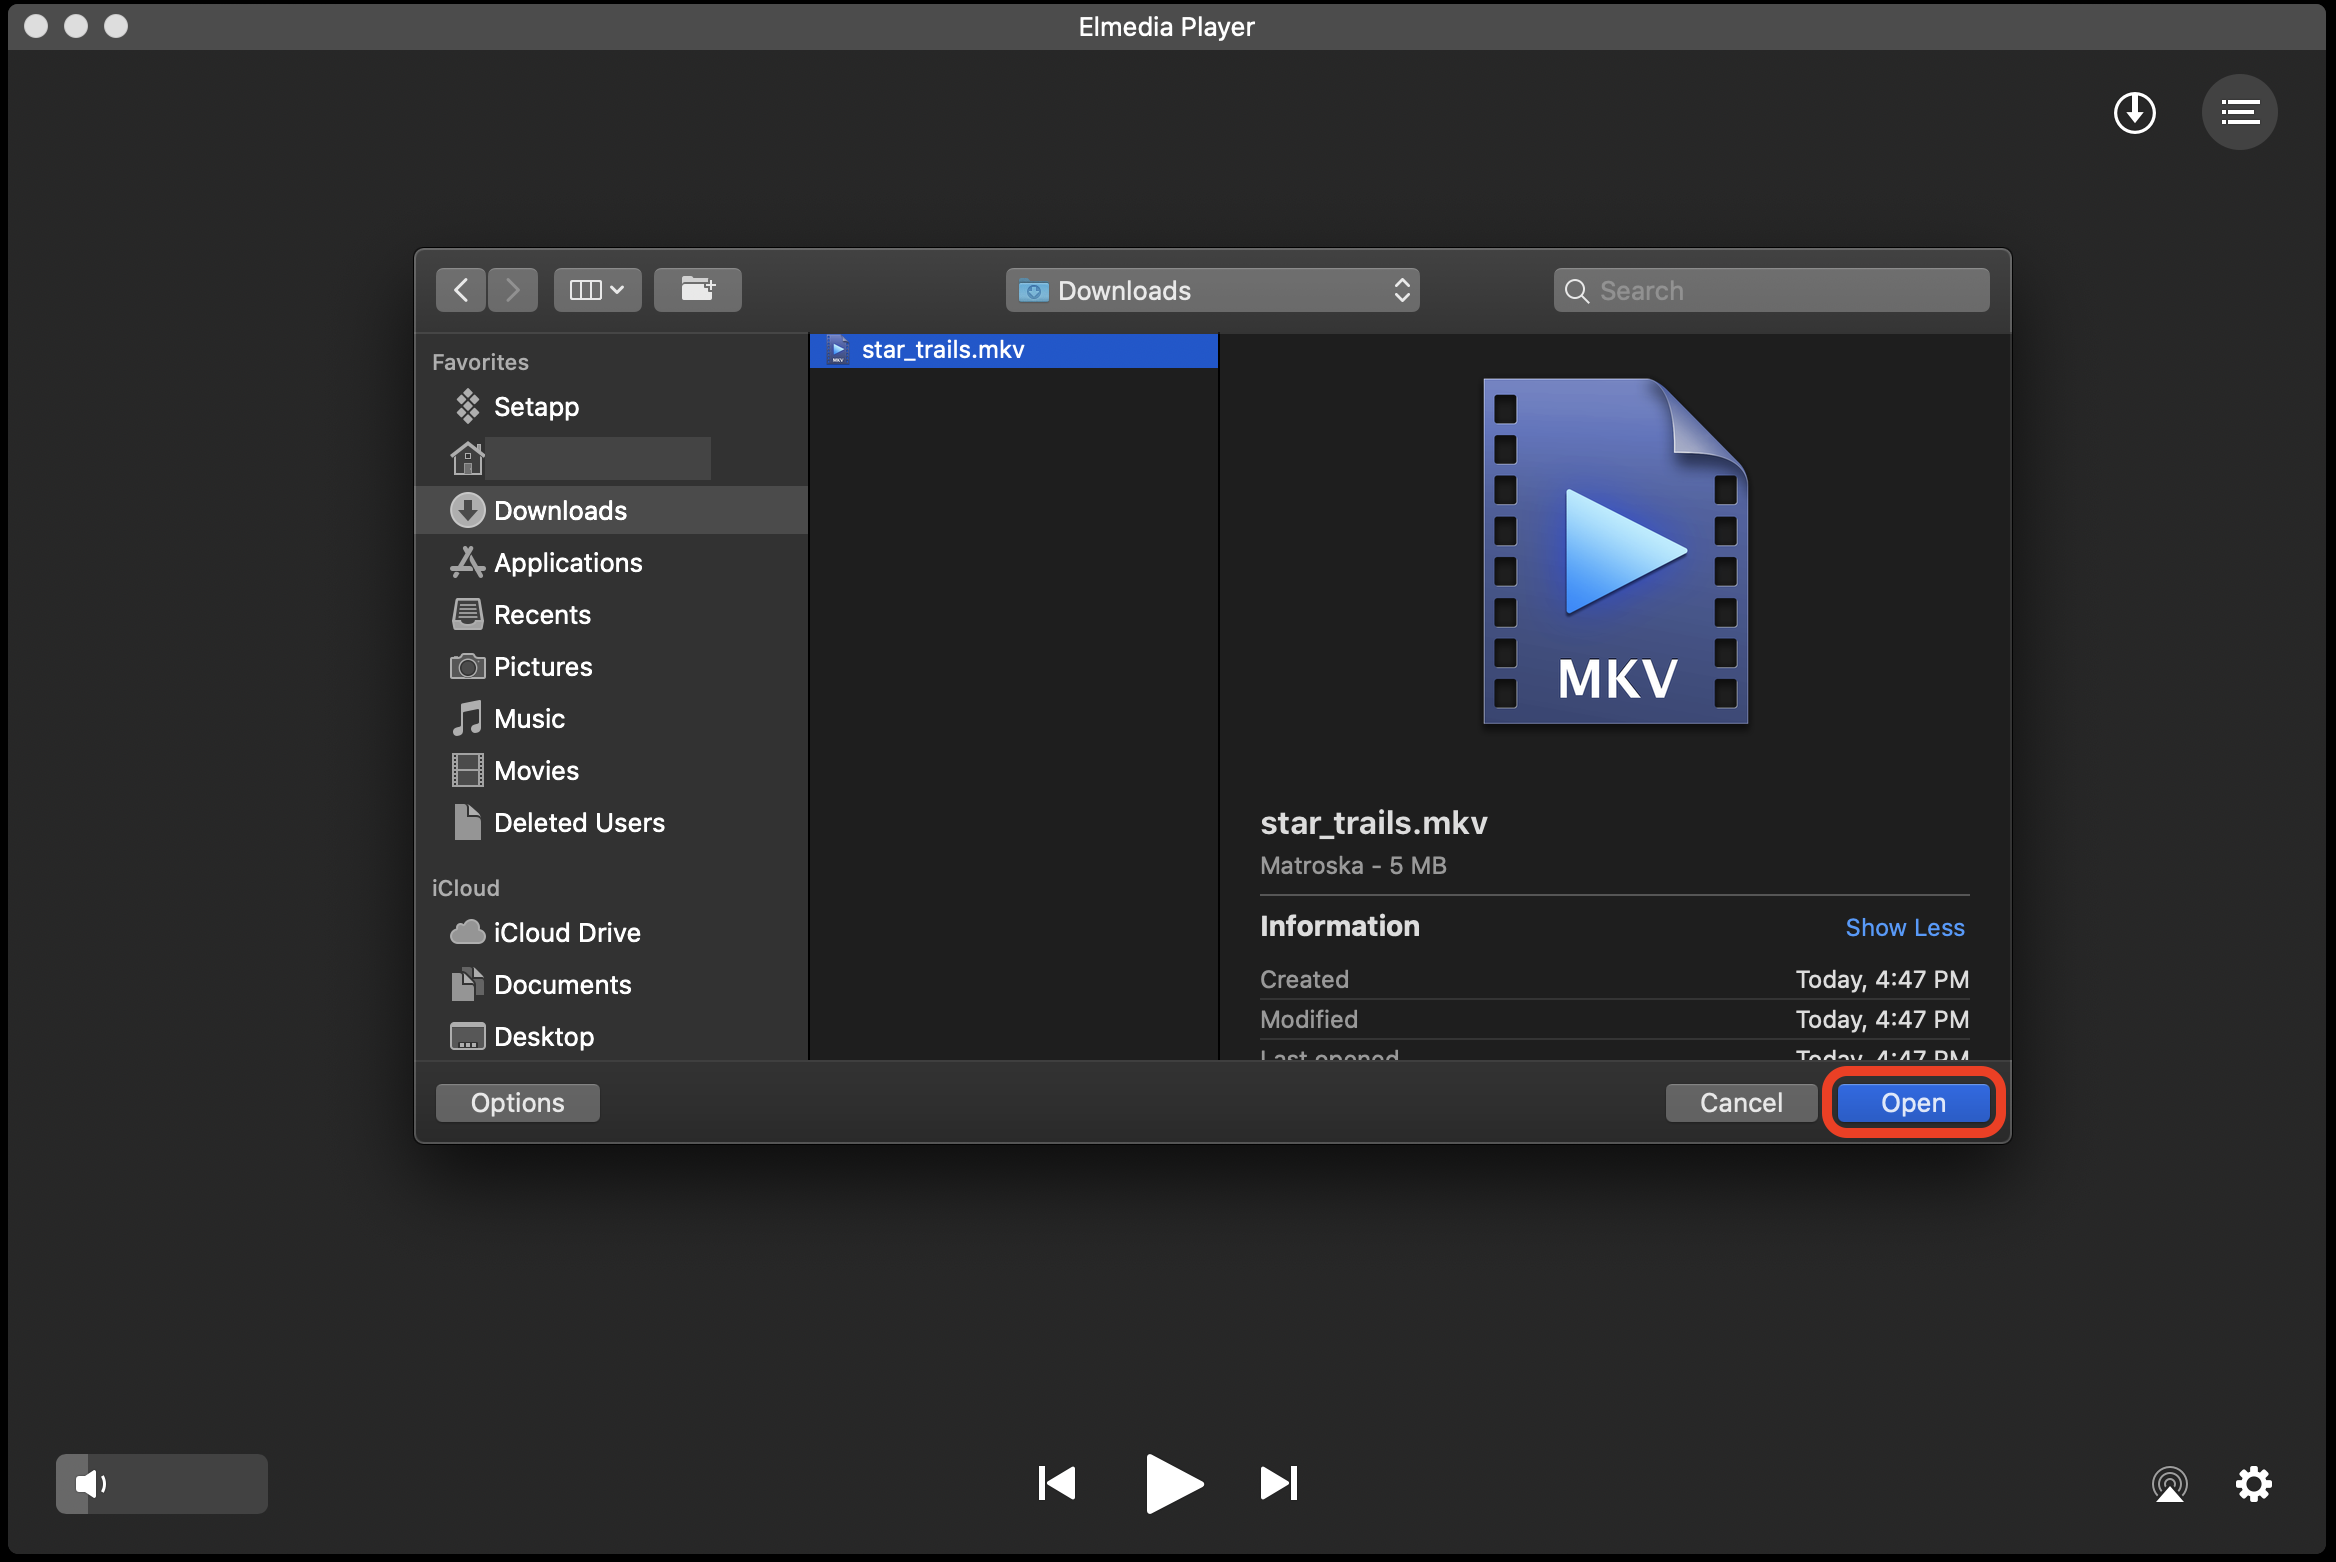 Open MKV files with Elmedia Player